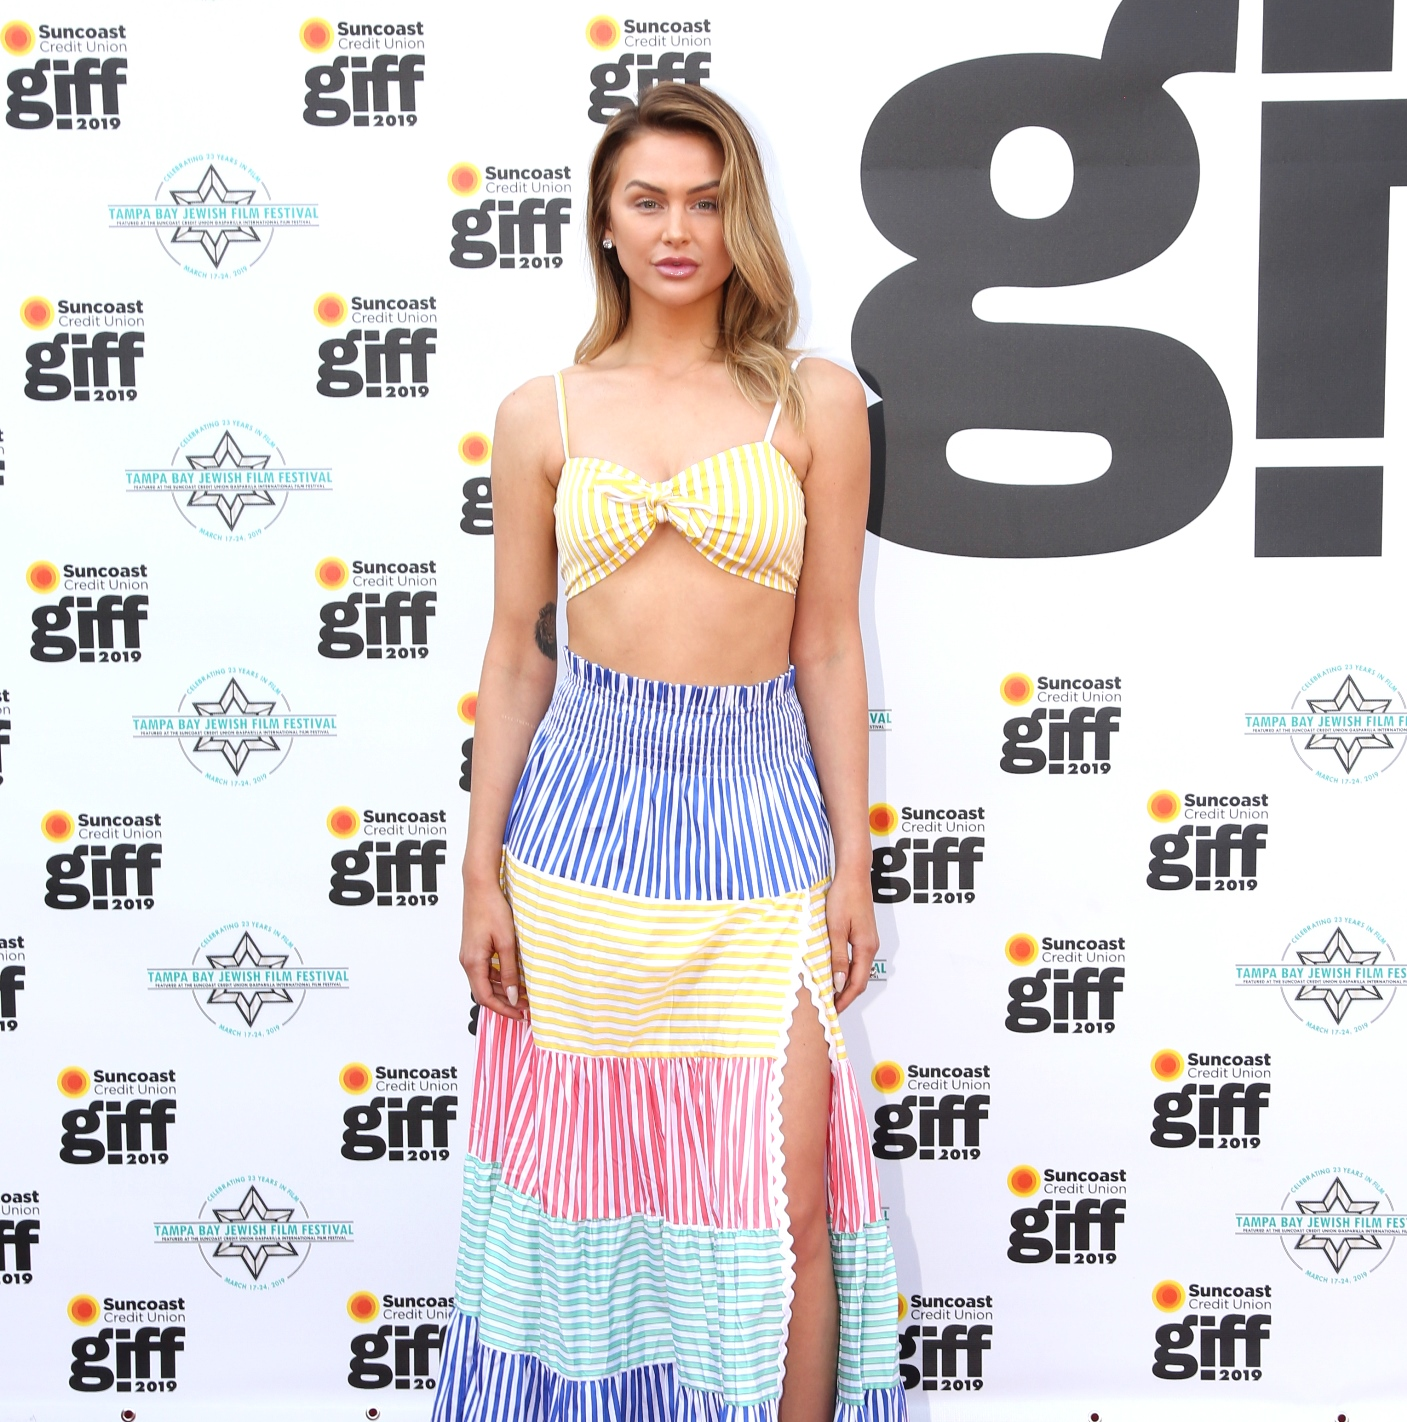 EXCLUSIVE: Lala Kent Reveals if She's Quitting Vanderpump Rules, Talks Wedding Date and Sobriety, Plus Does She Regret Feud with Billie and Raquel?